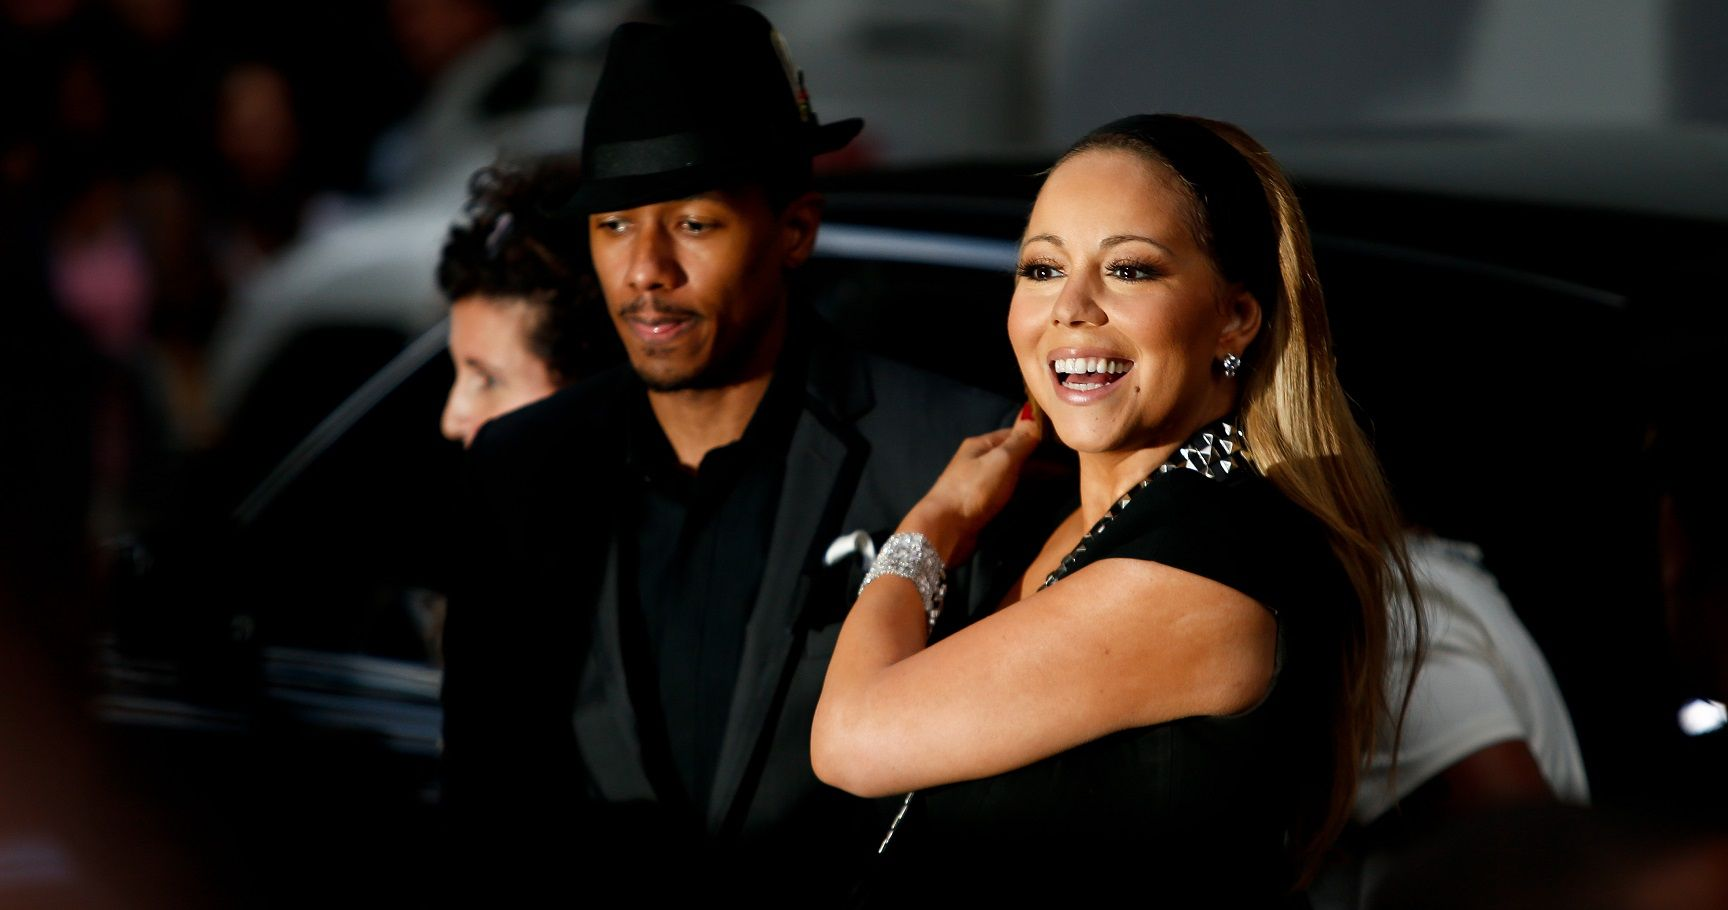 10 of the Most Heartbreaking Celebrity Divorces